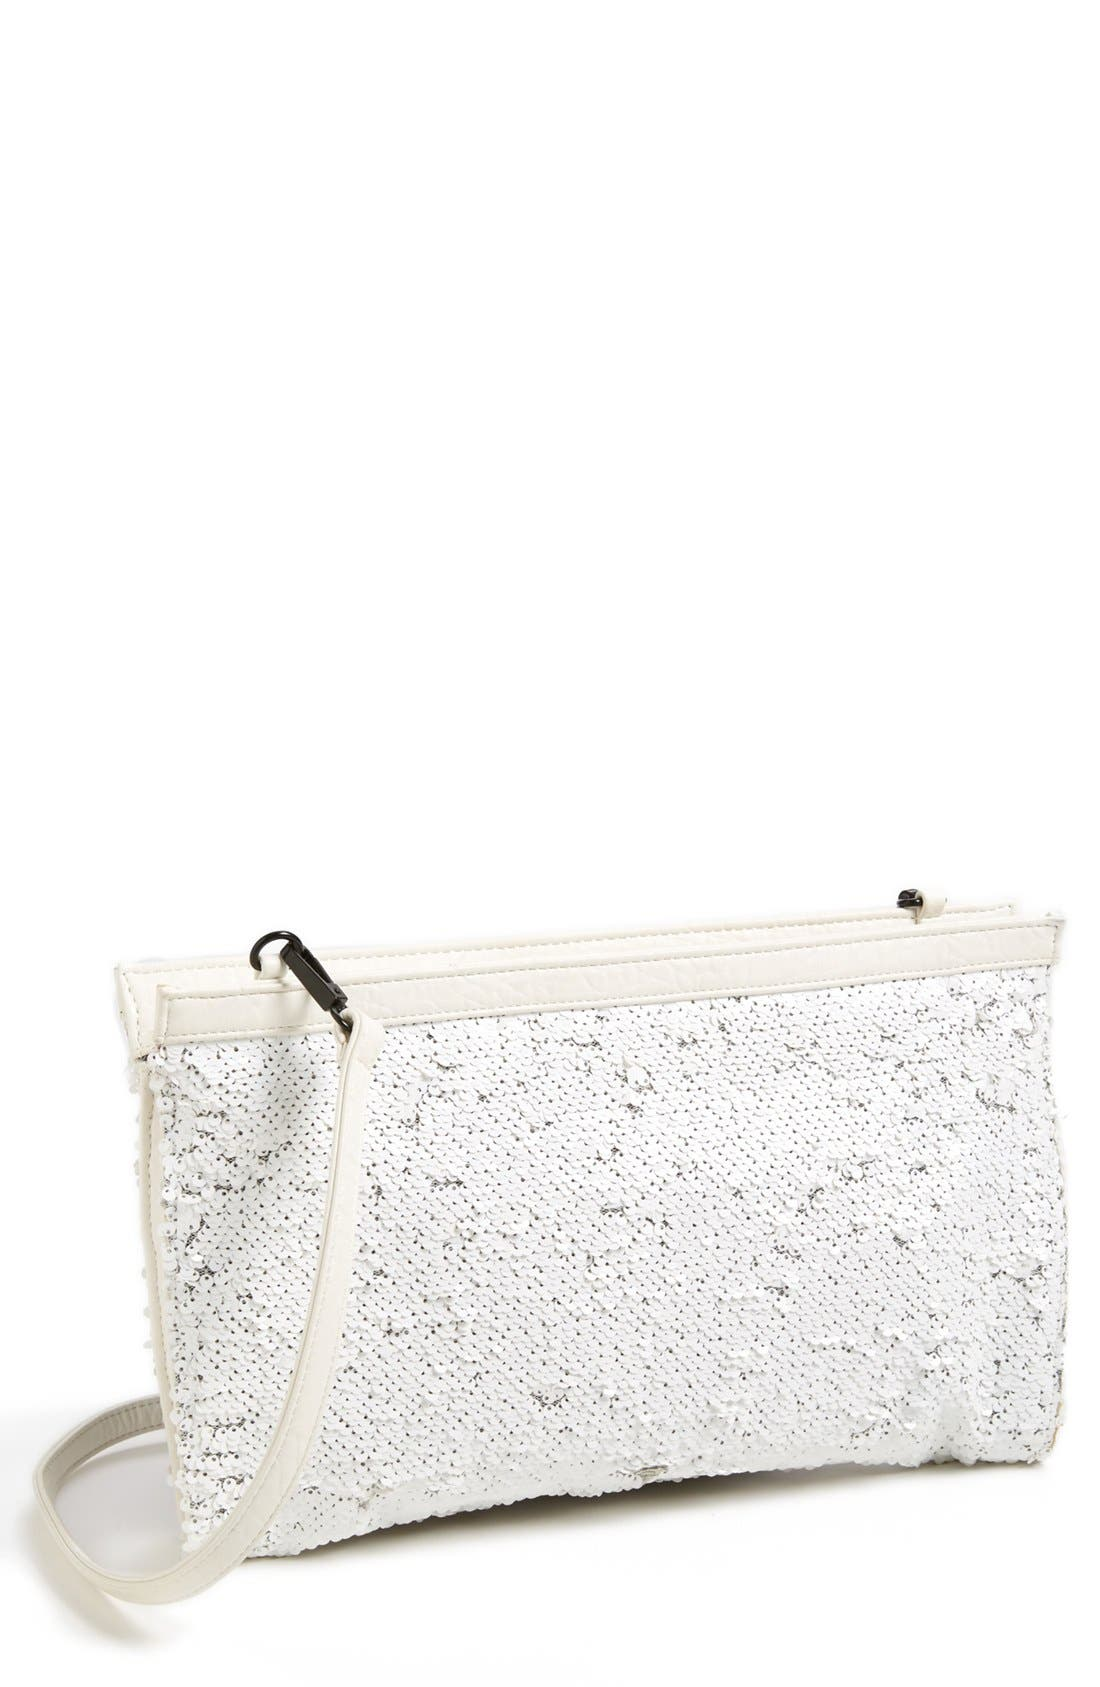 Alternate Image 1 Selected - French Connection Sequin Convertible Clutch